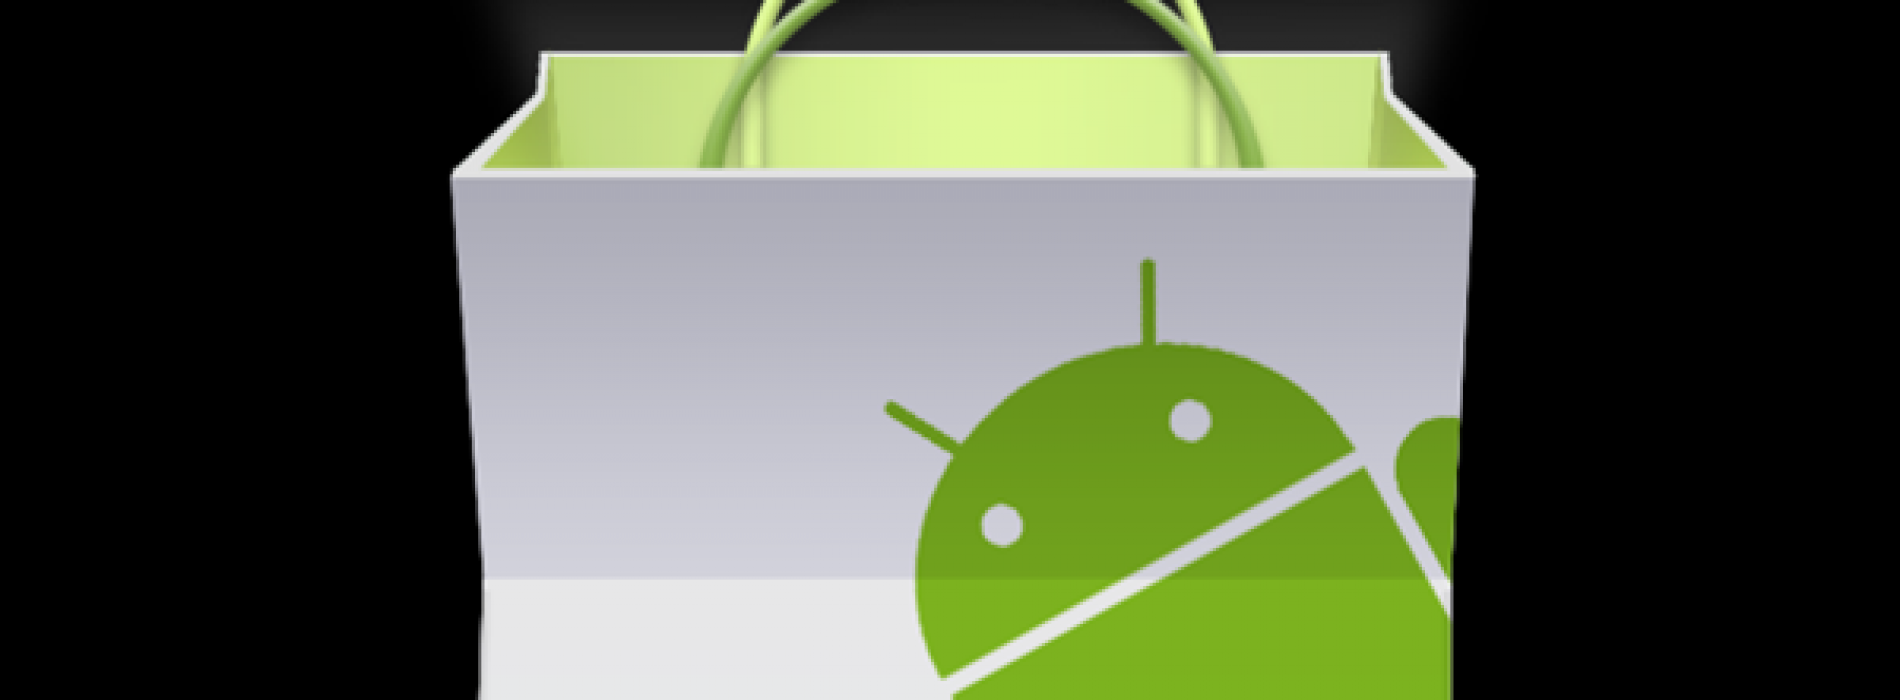 Android app size limit increased from 50MB to 4GB